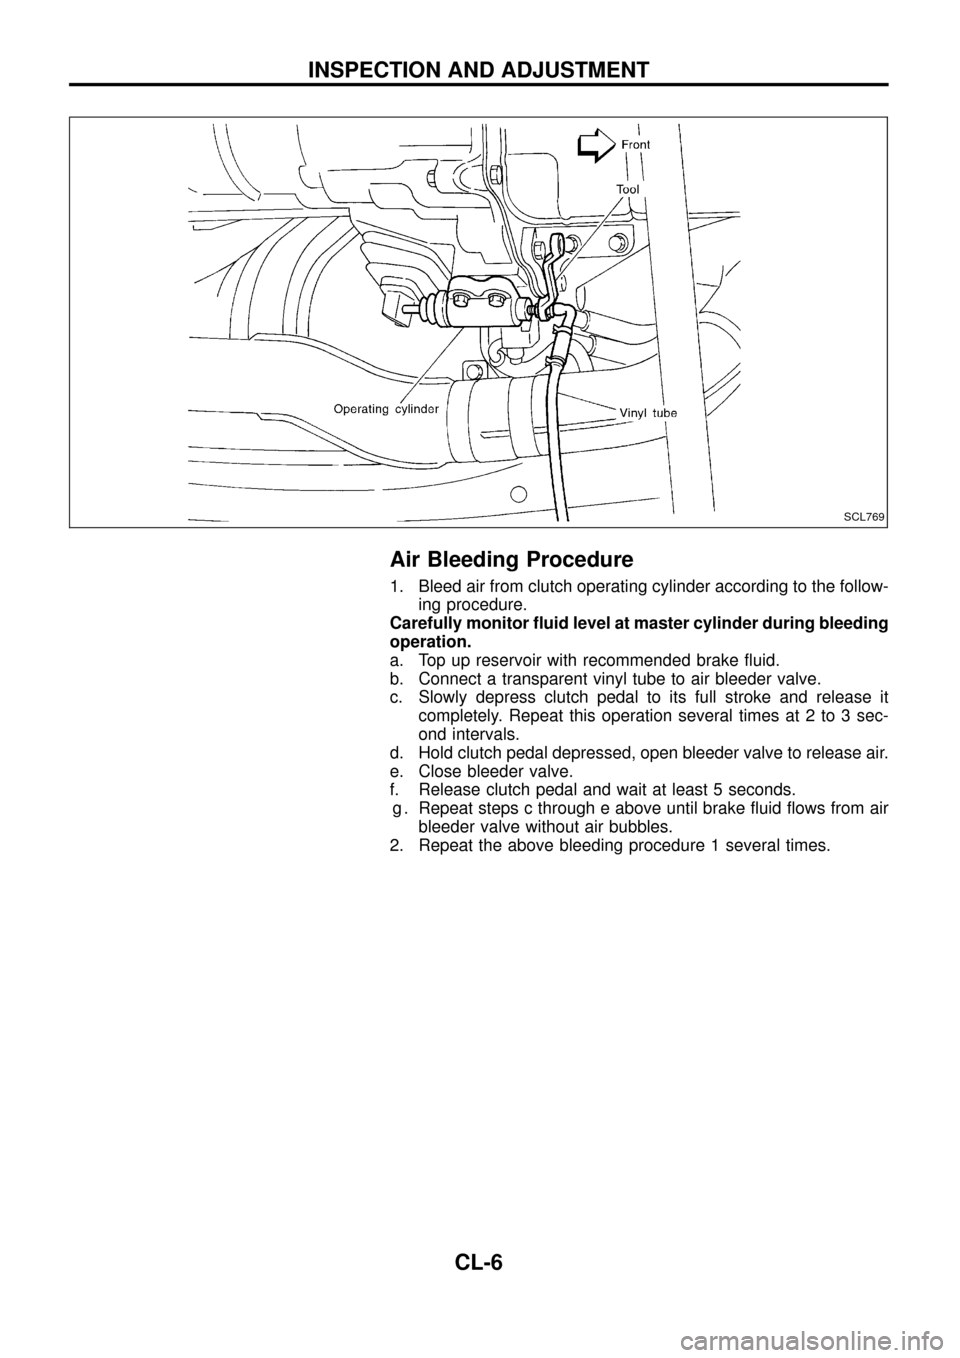 NISSAN PATROL 1998 Y61 / 5.G Clutch Workshop Manual